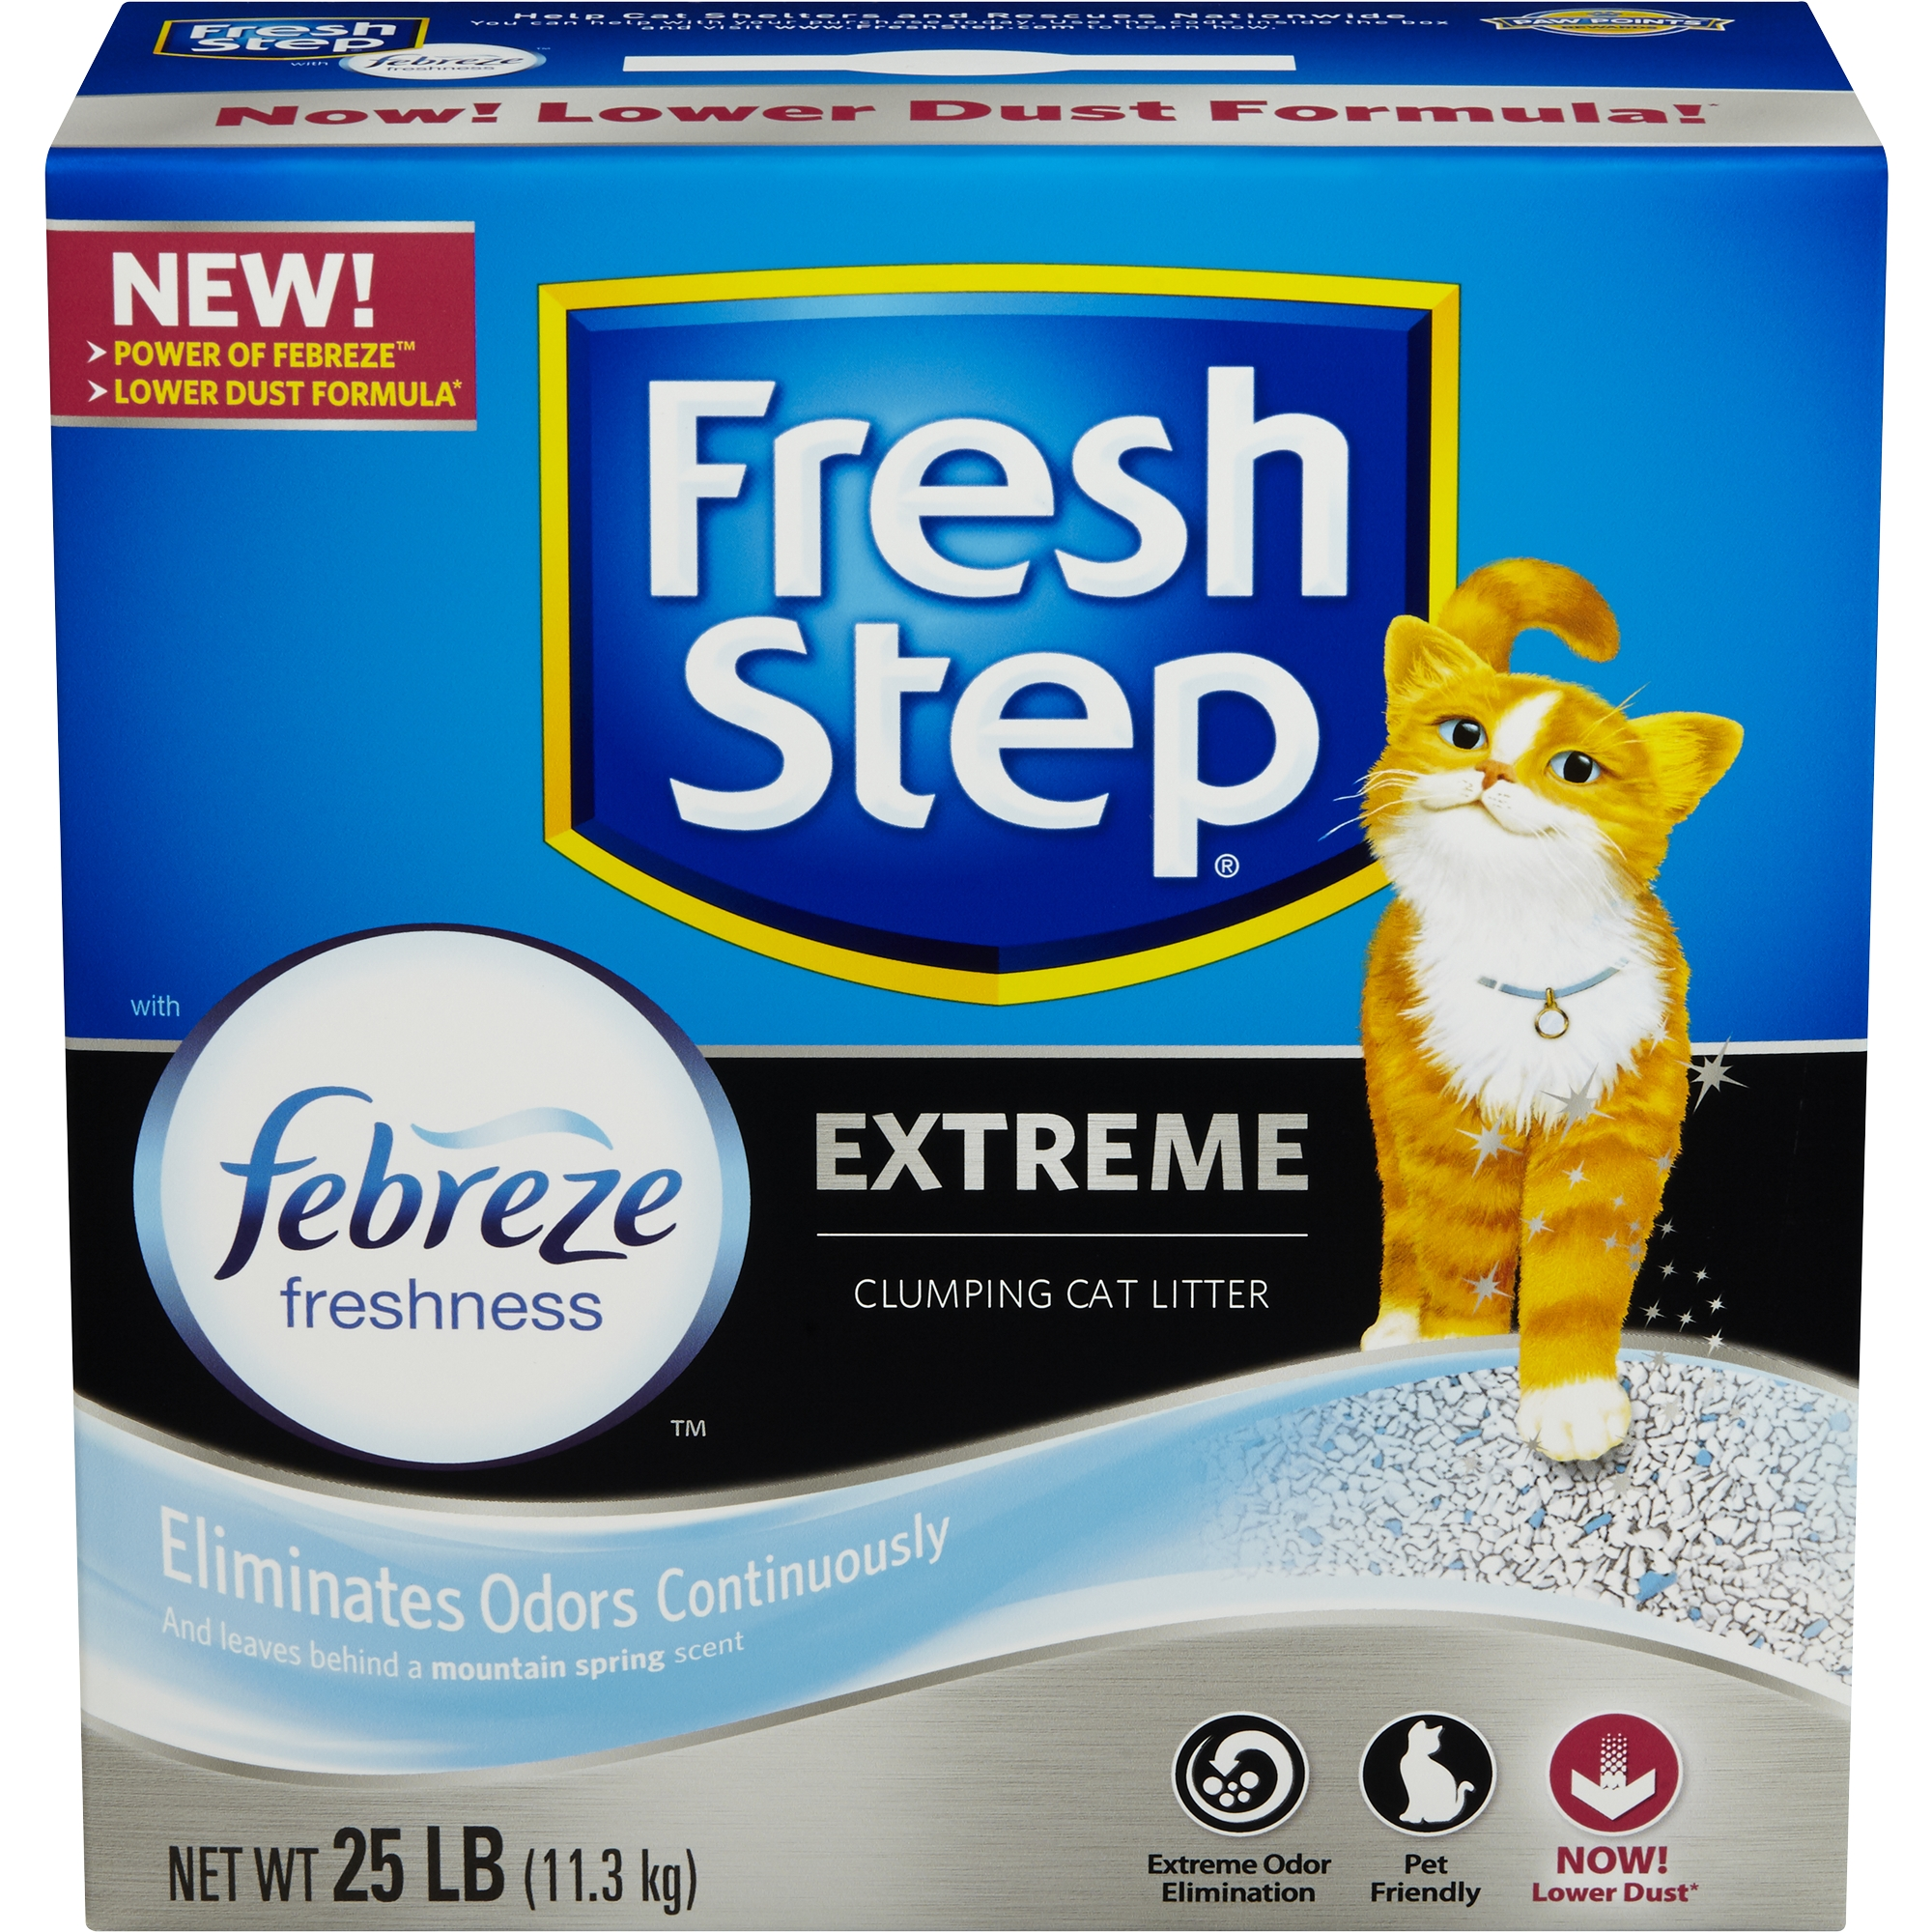 Fresh Step Extreme with Febreze Freshness, Clumping Cat Litter, Scented, 25 Pounds